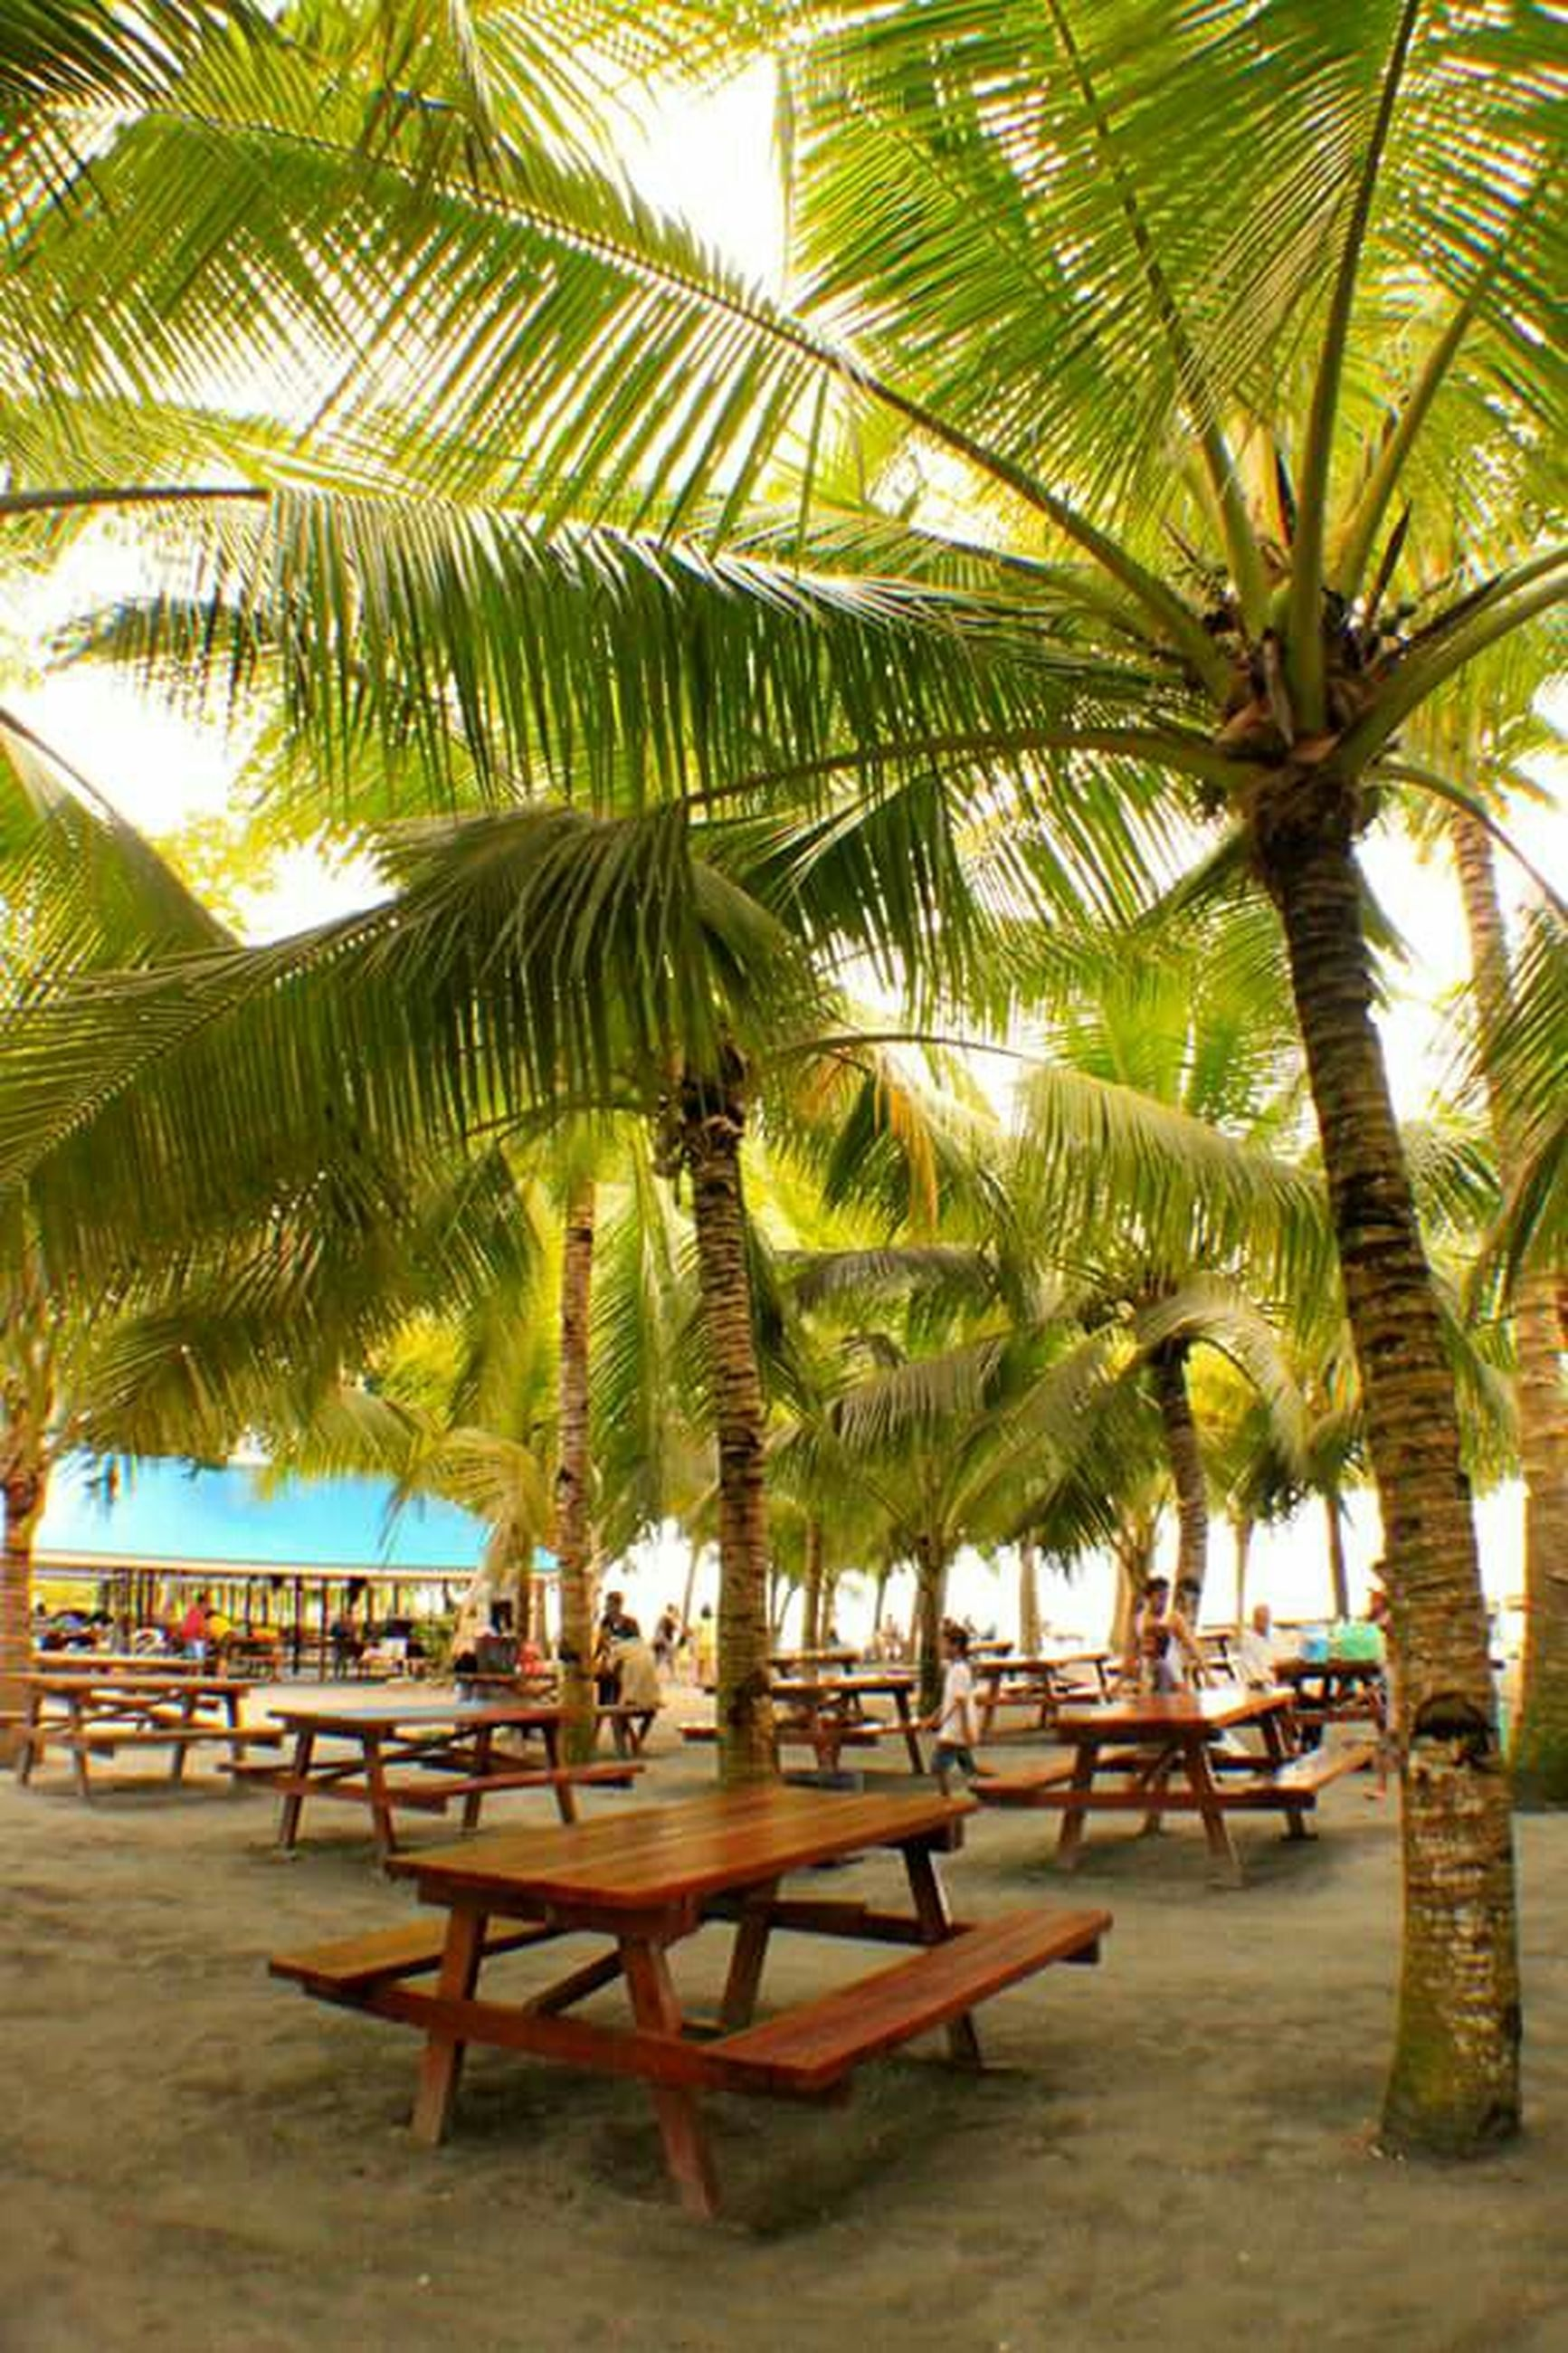 palm tree, tree, beach, tree trunk, sea, growth, tranquility, vacations, coconut palm tree, sand, nature, tranquil scene, tropical climate, palm leaf, horizon over water, sky, water, scenics, lounge chair, tropical tree